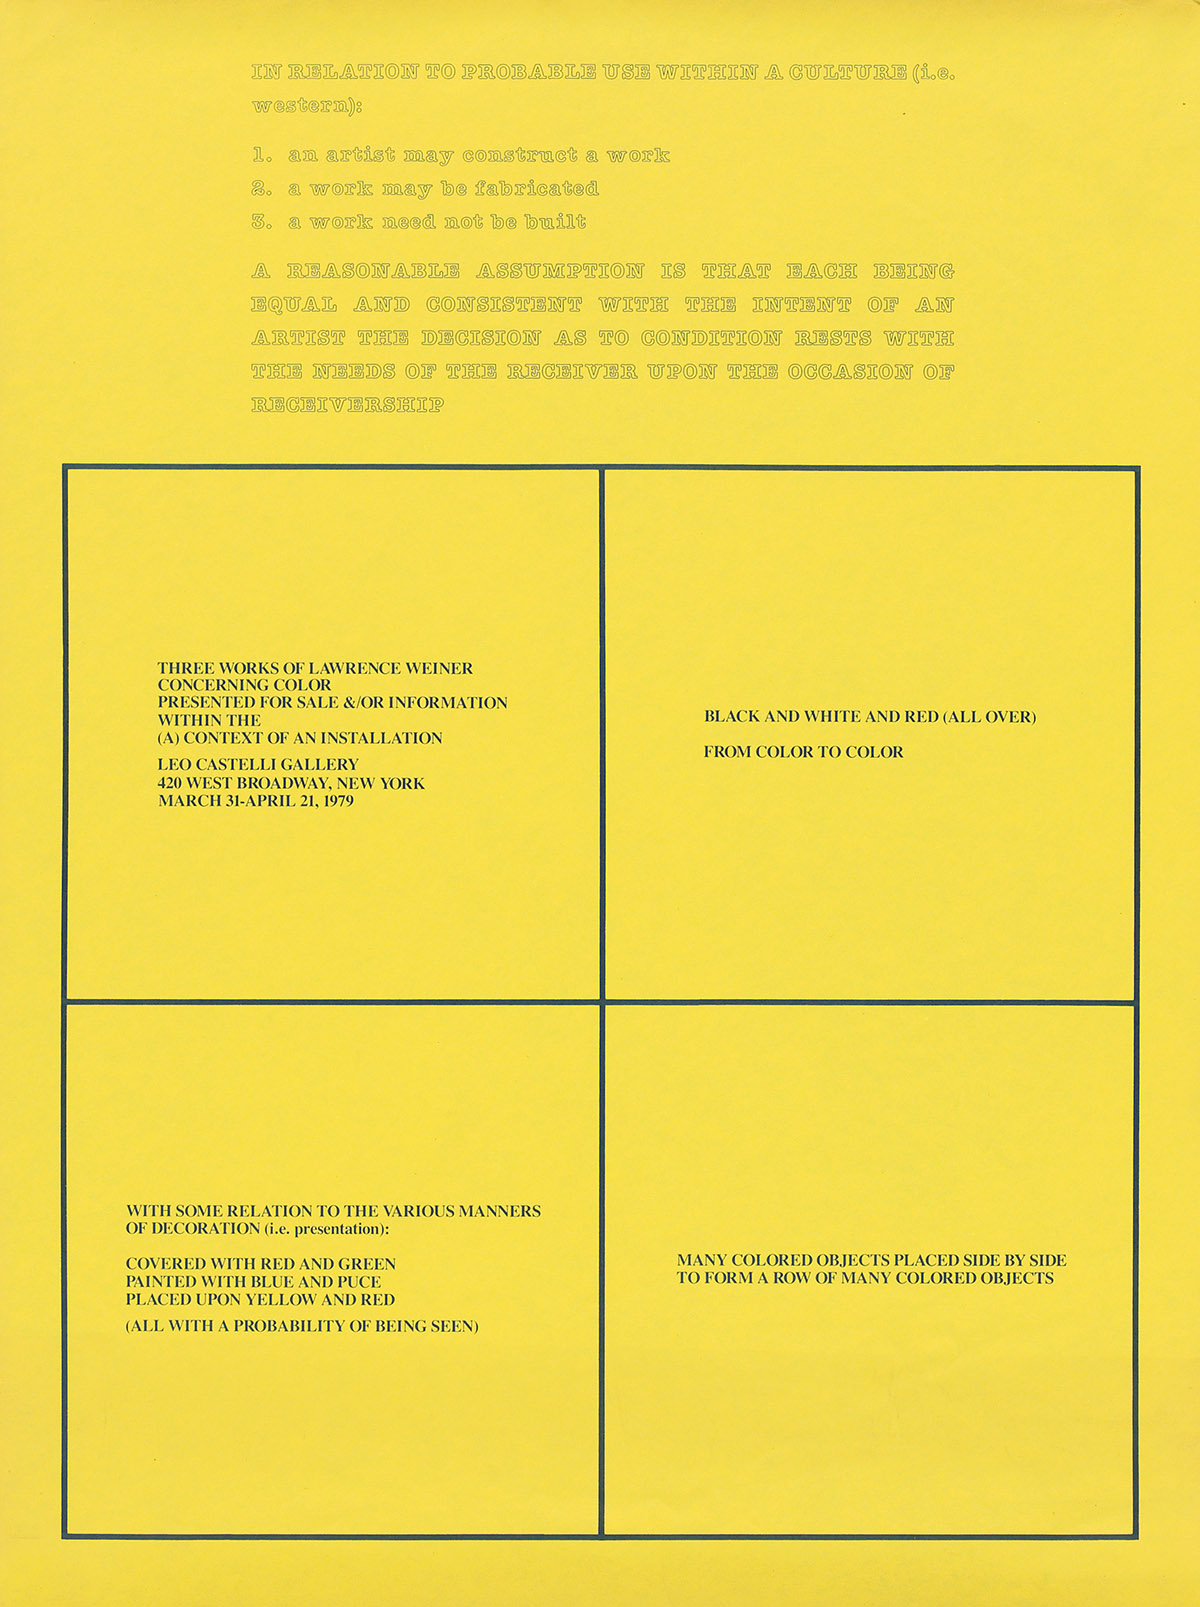 LAWRENCE-WEINER-(1942--)-IN-RELATION-TO-PROBABLE-USE-WITHIN-